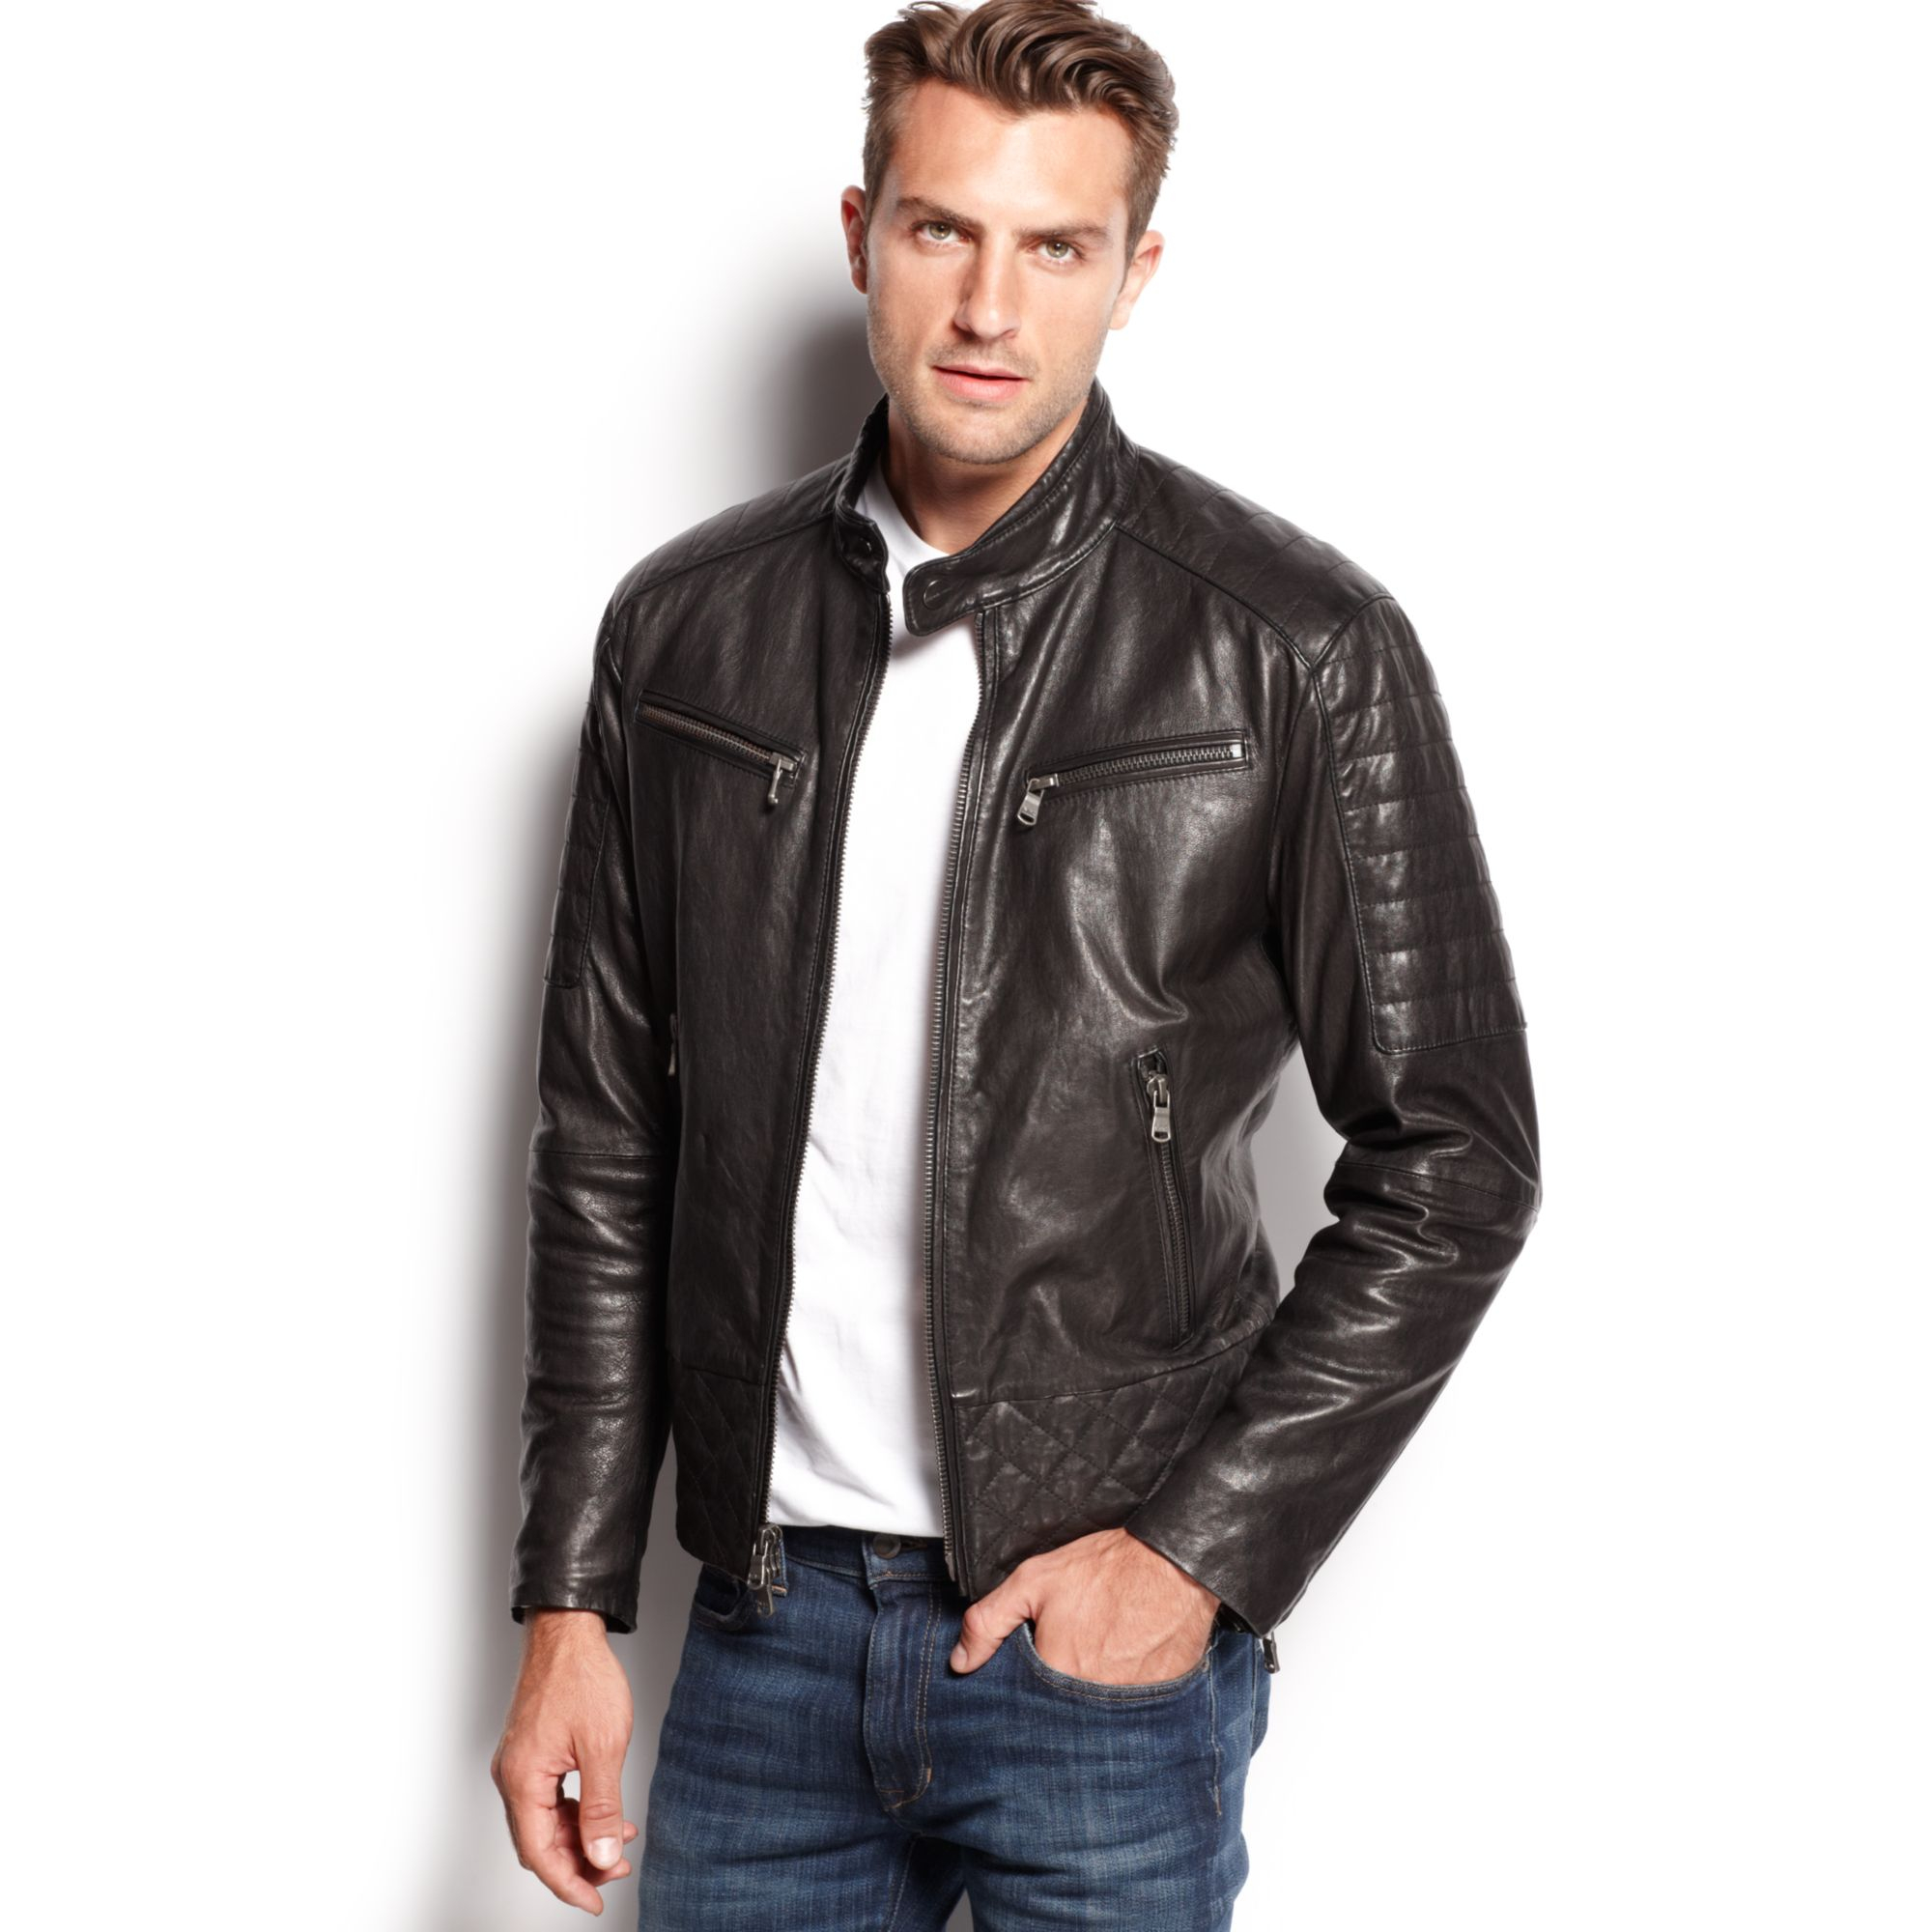 michael kors quilted washed leather jacket in black for men lyst. Black Bedroom Furniture Sets. Home Design Ideas